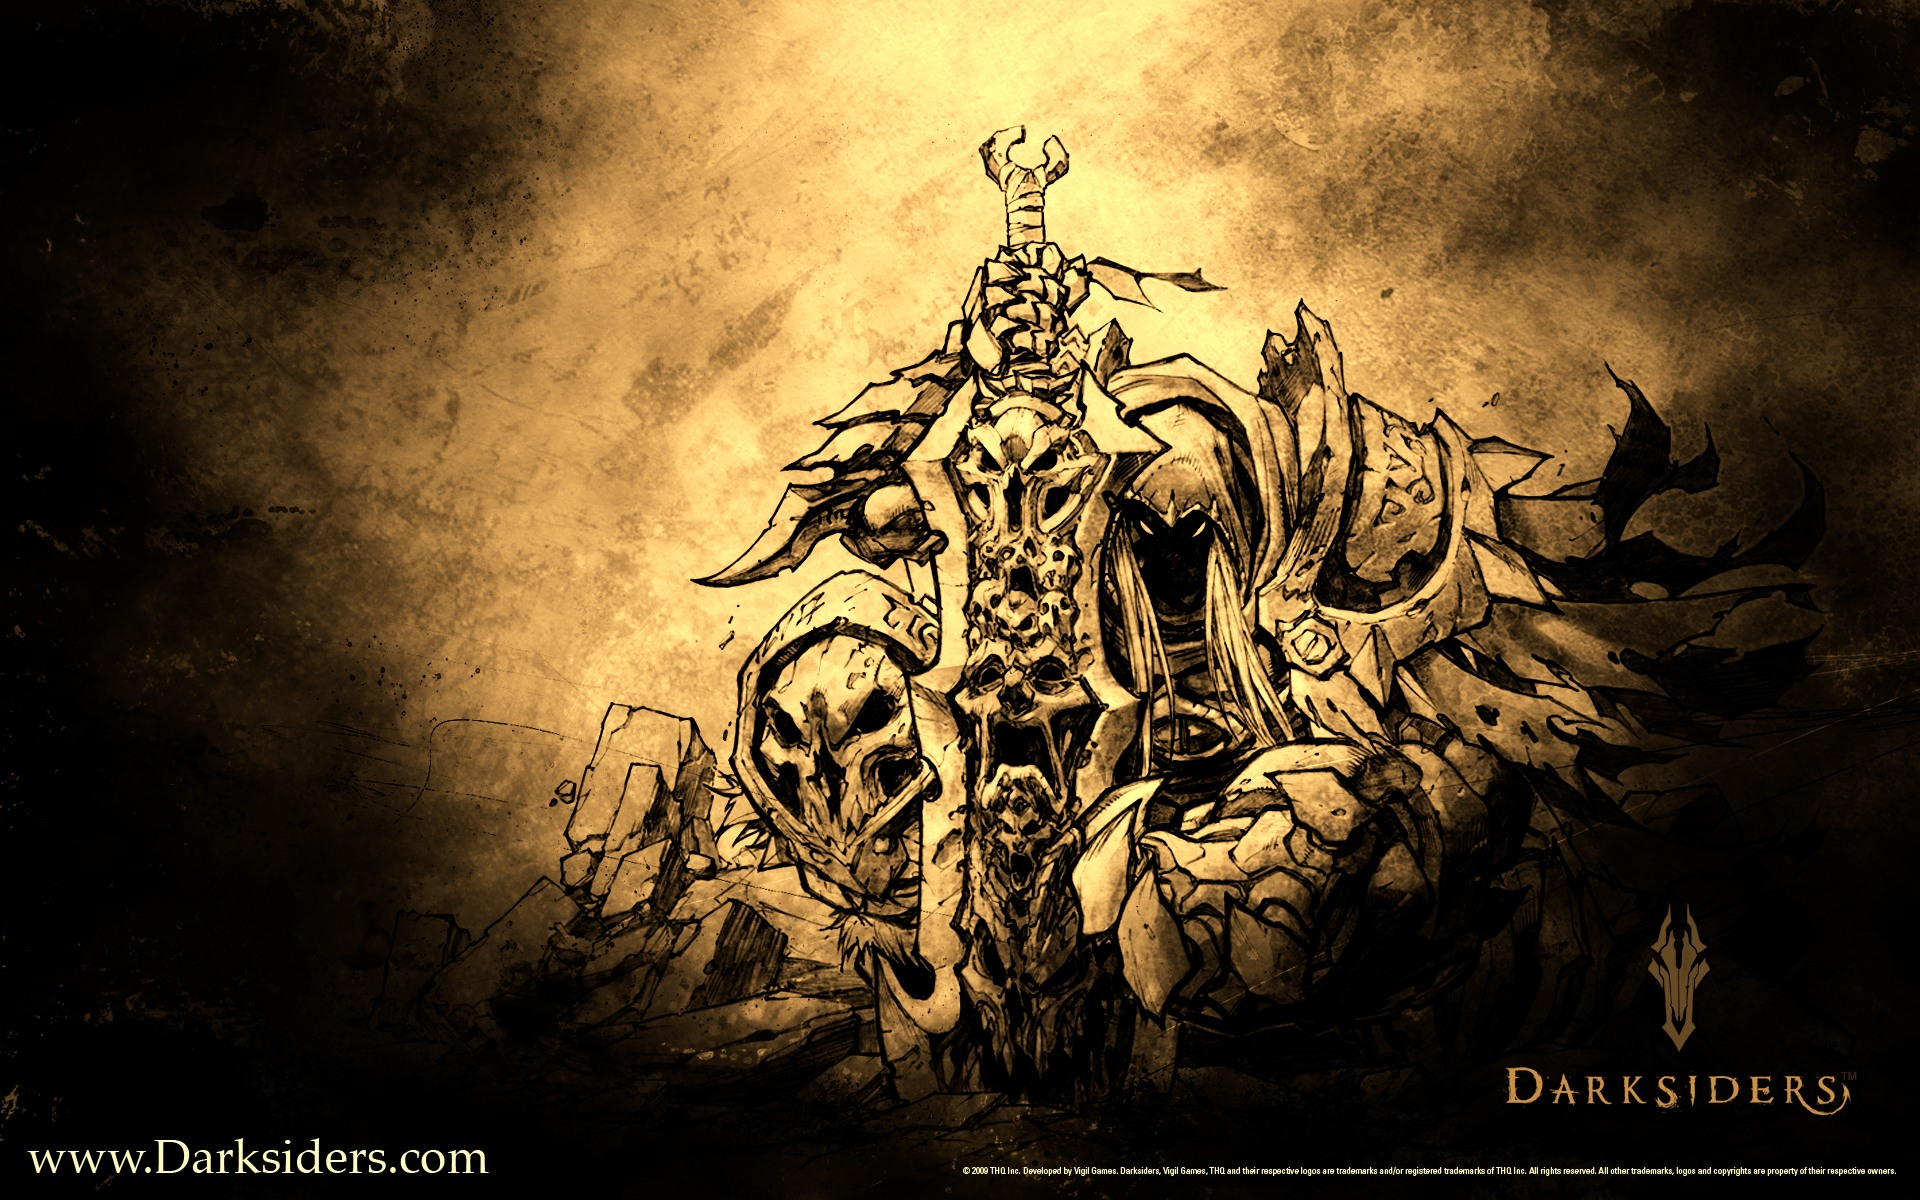 Download Darksiders Wallpaper 1920x1200 Wallpoper 302991 1920x1200